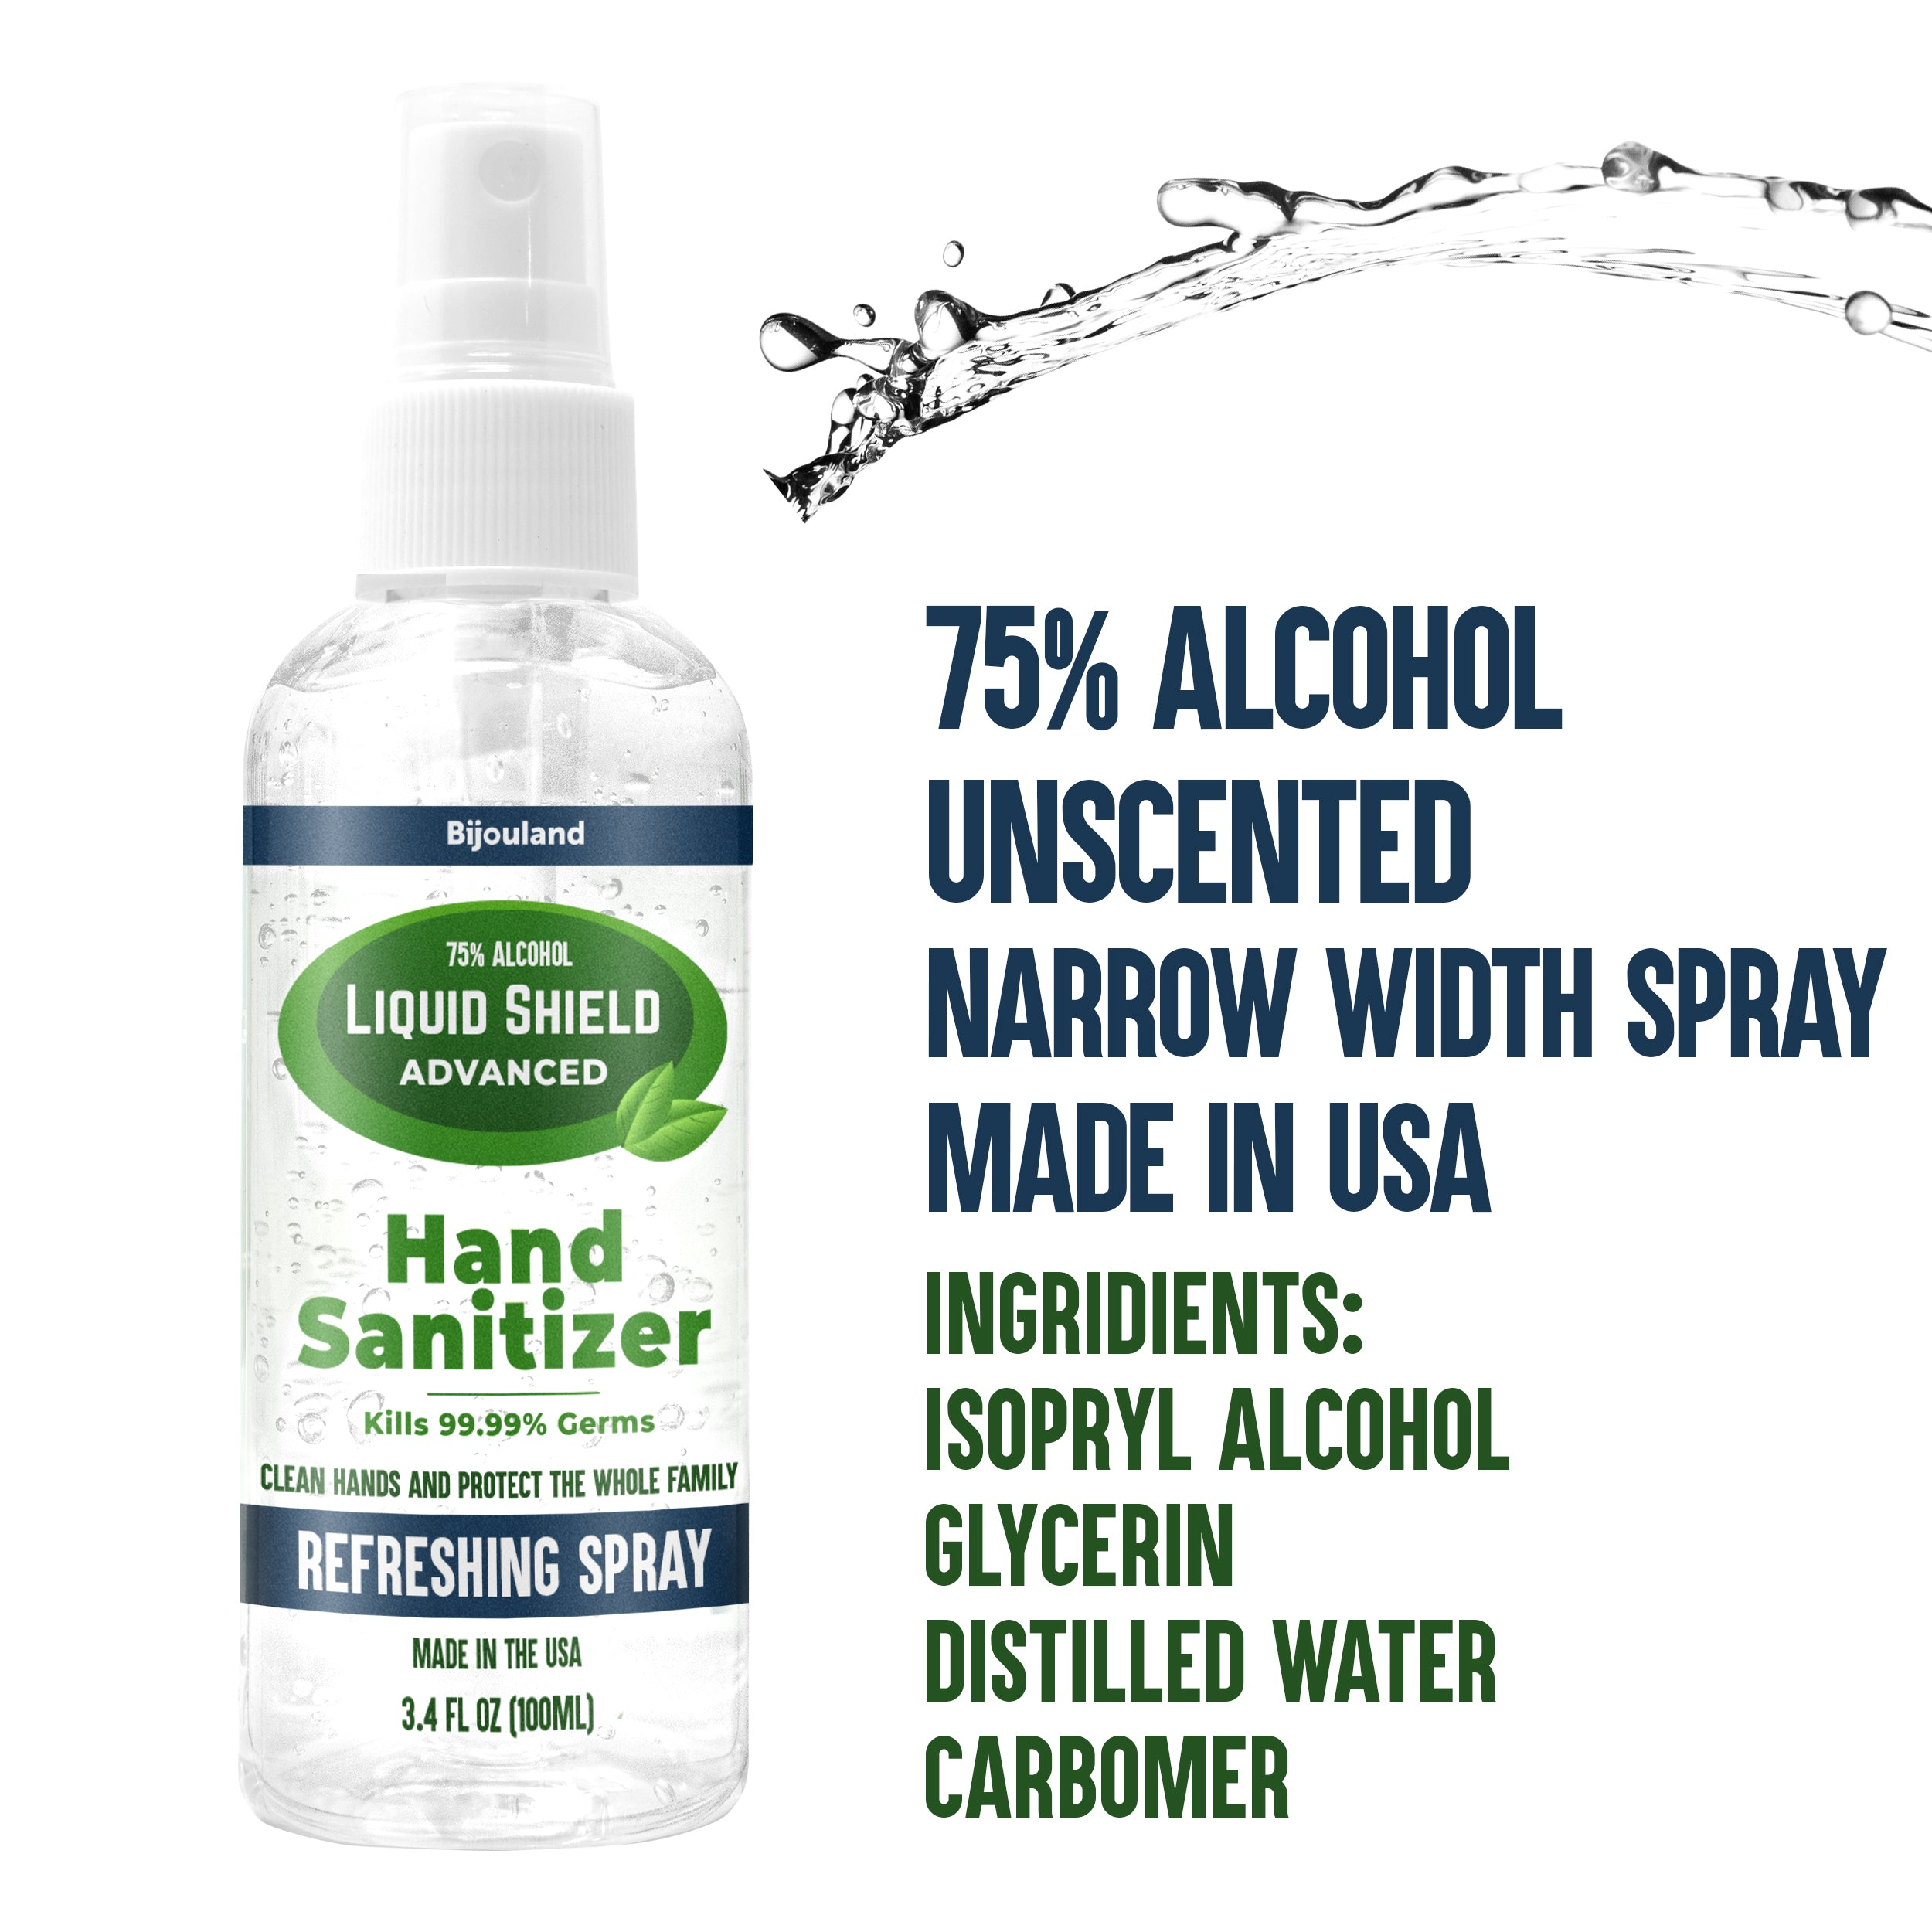 Hand Sanitizer Unscented - Spray bottle 100ml - 75% Alcohol - Made in USA